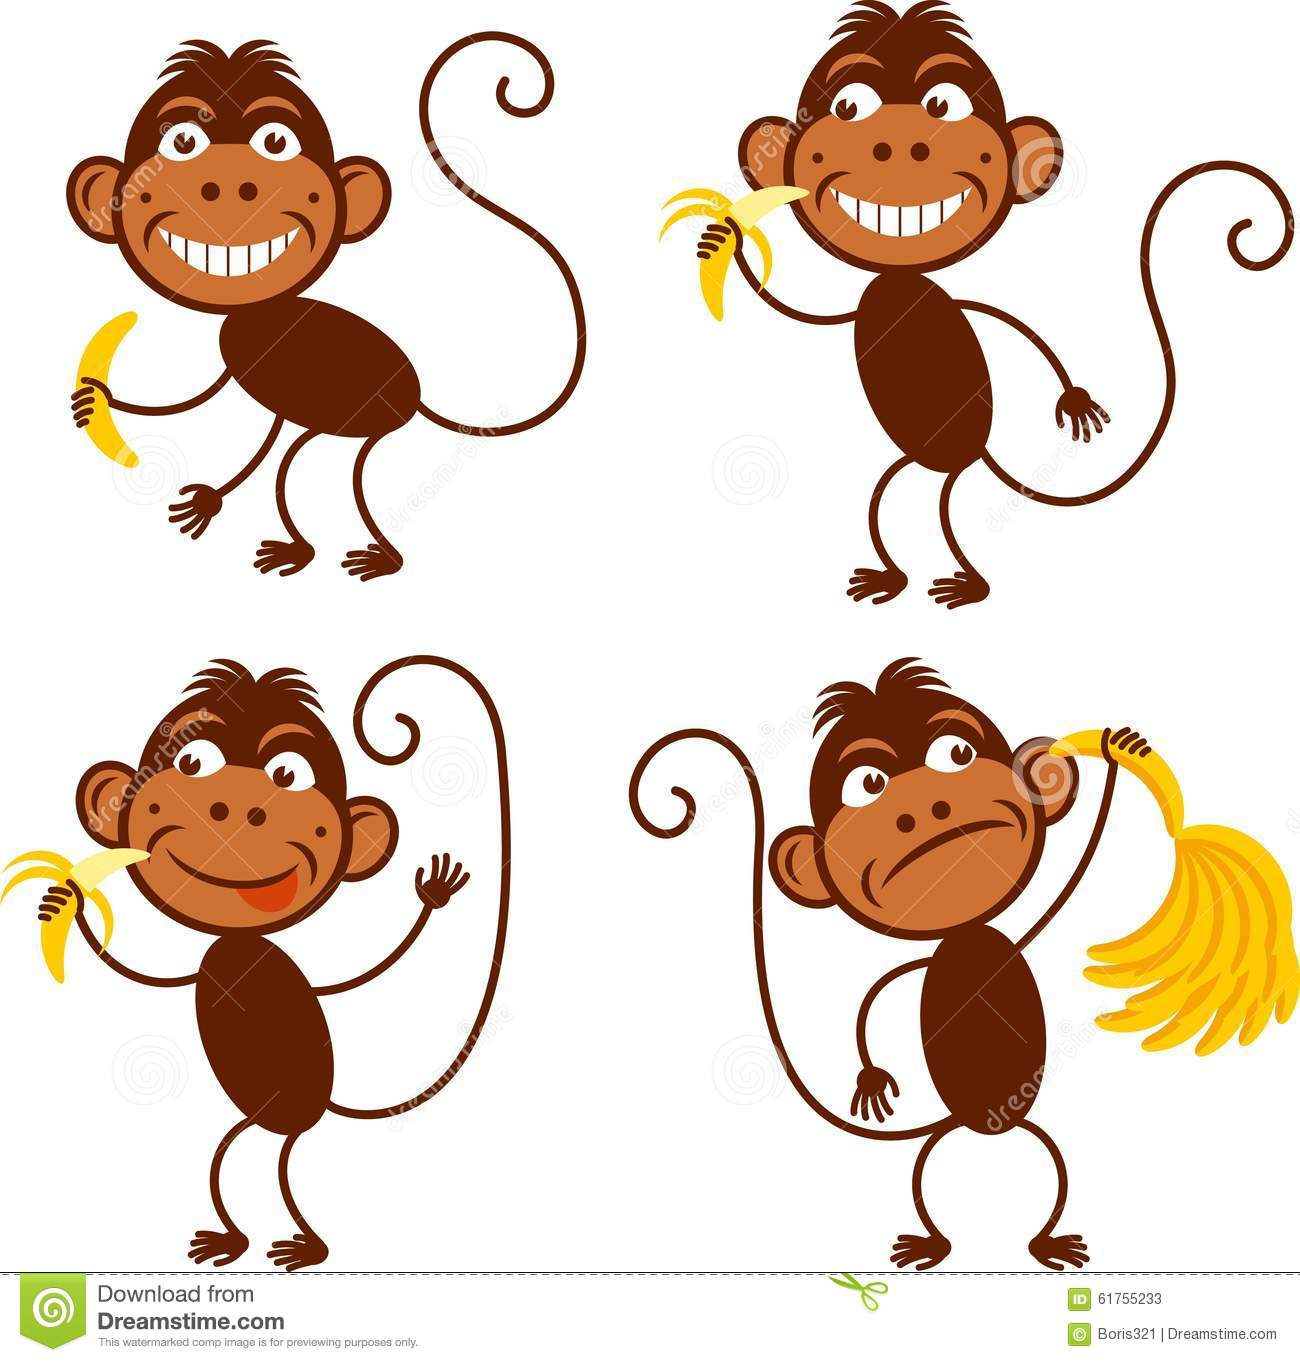 4 Monkeys Simple Stock Vector Image 61755233